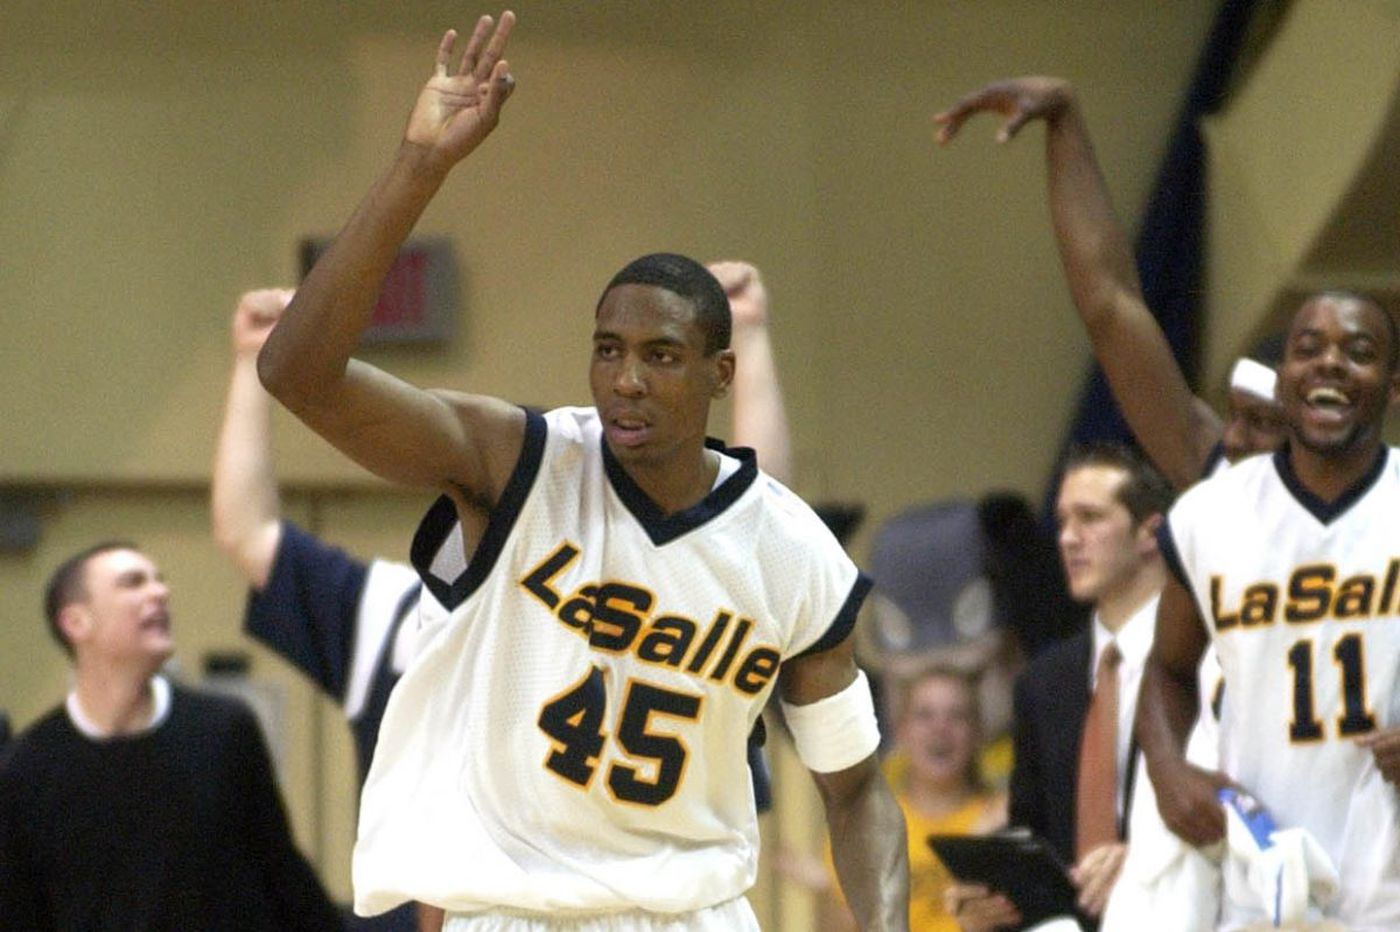 Funeral service for Rasual Butler set for Sunday